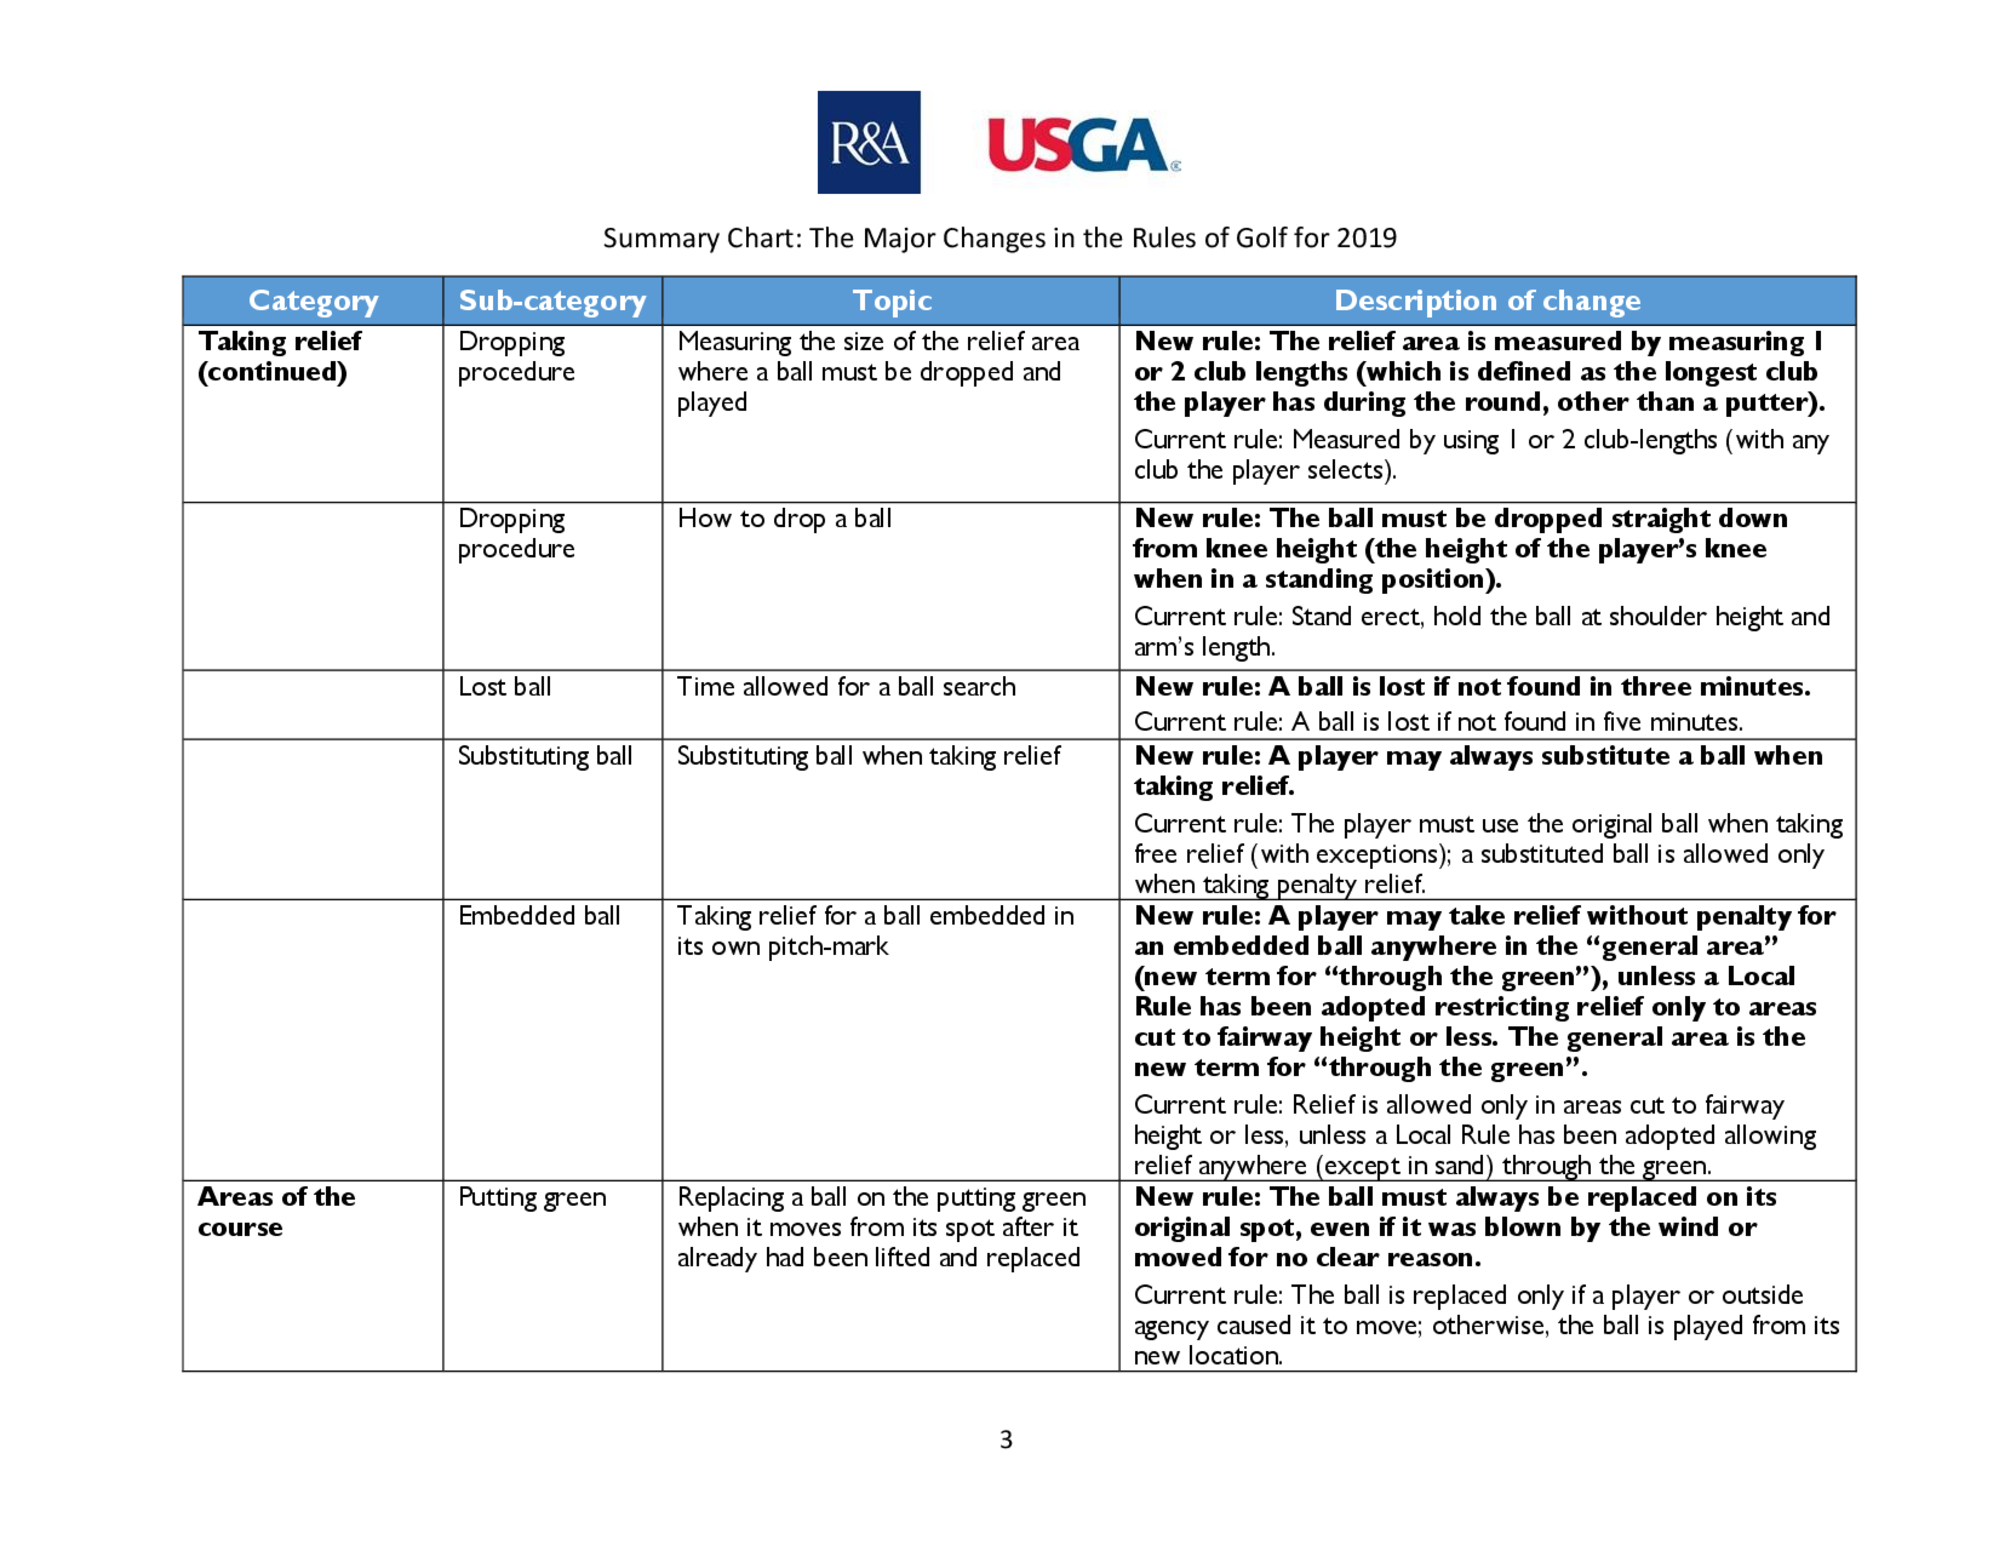 Summary of main changes 2019 rules of golf final  2  3